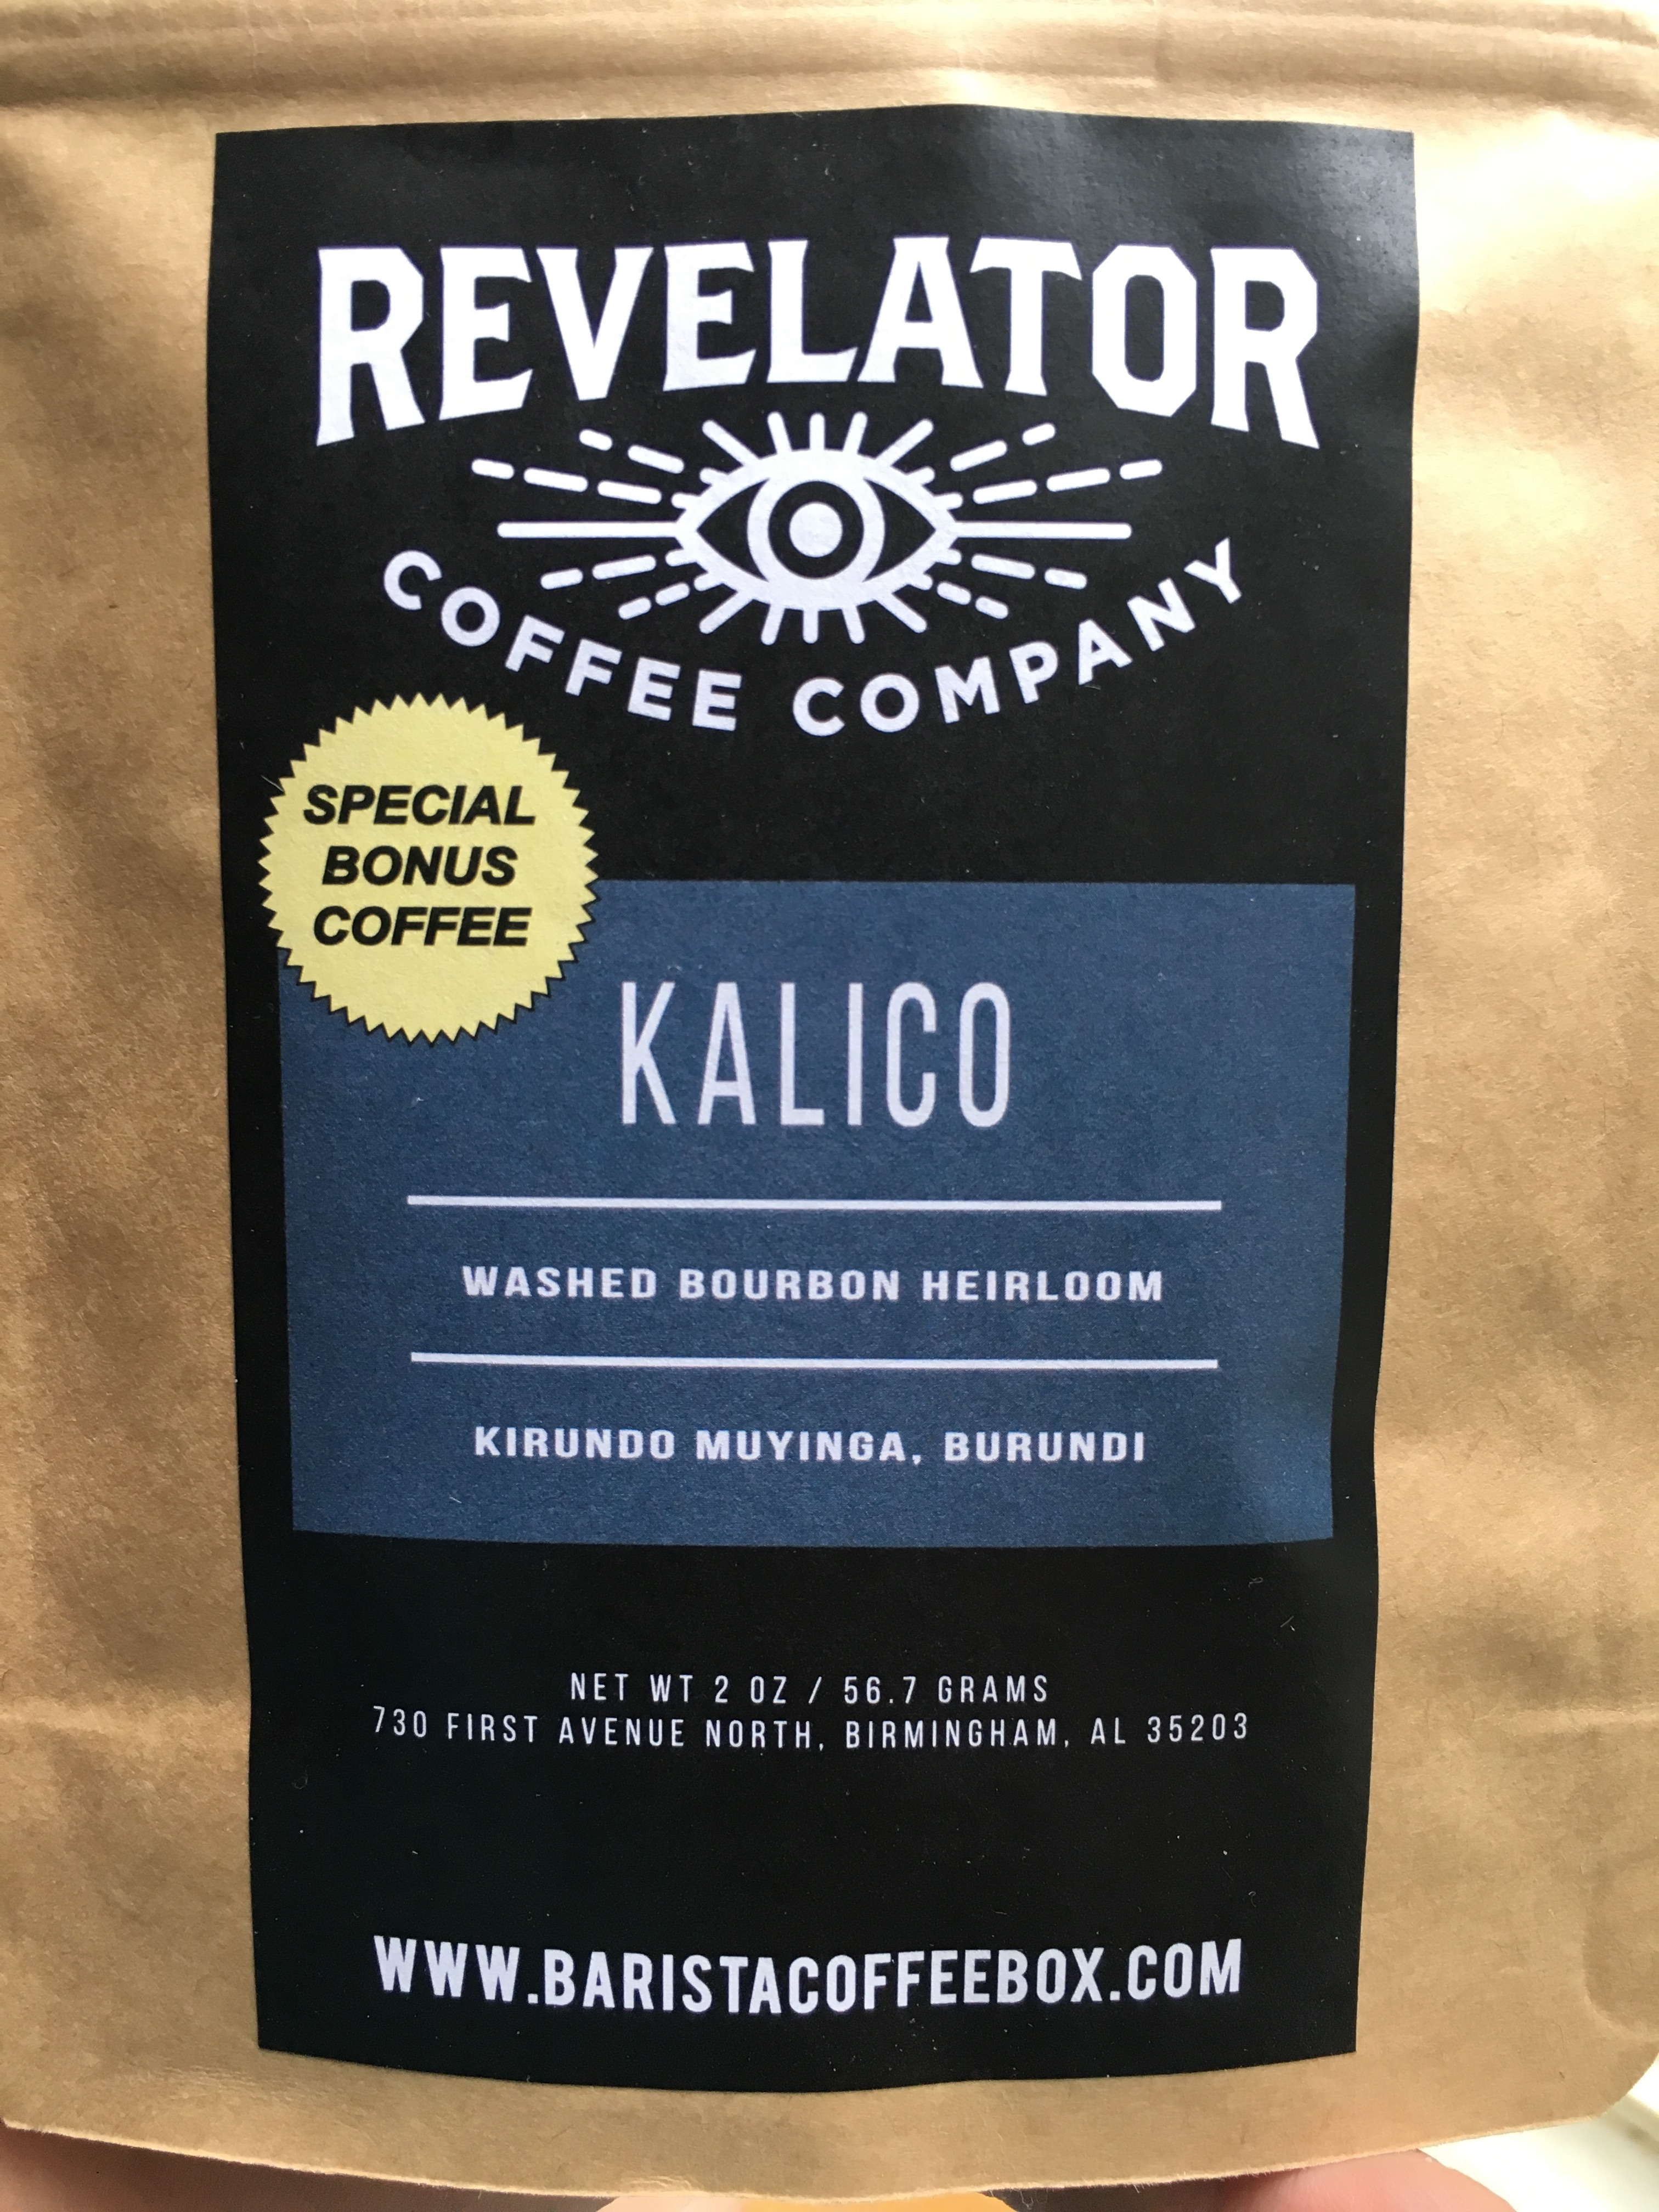 Barista Coffee Box 5/17: Revelator Kalico